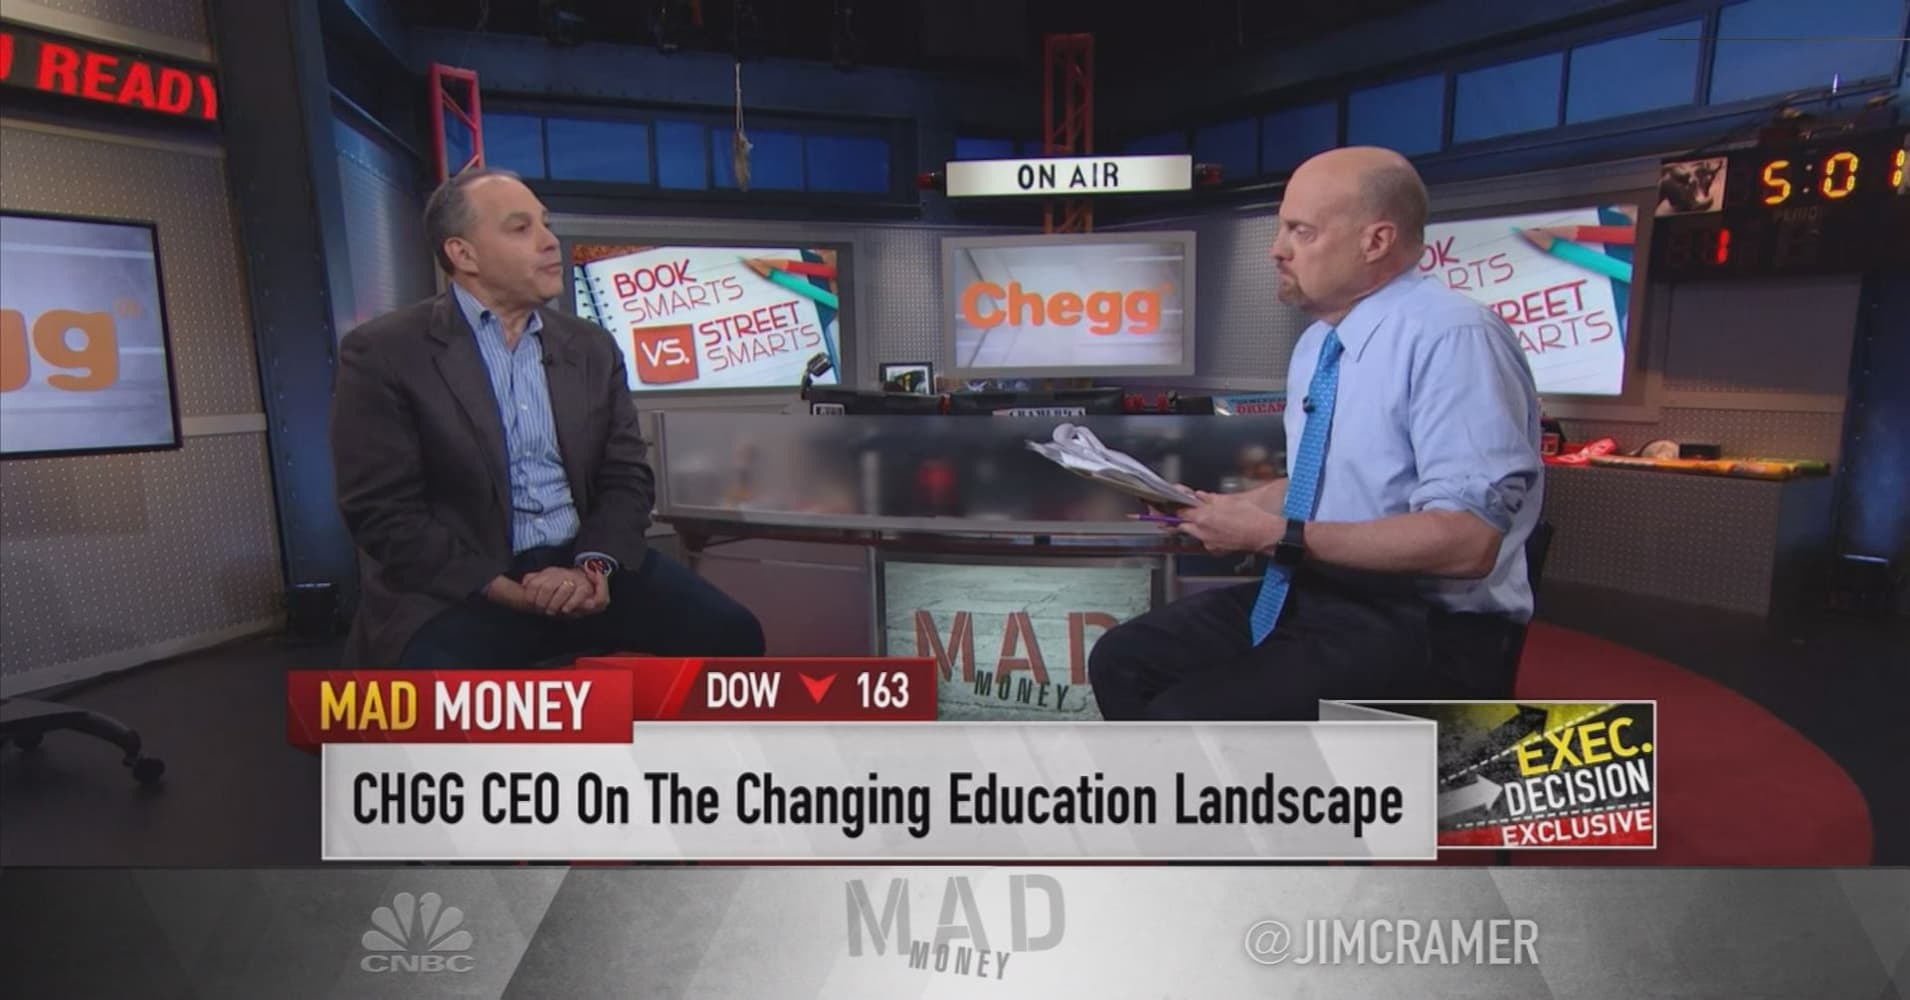 Chegg CEO: We believe the inevitable — People have to keep learning